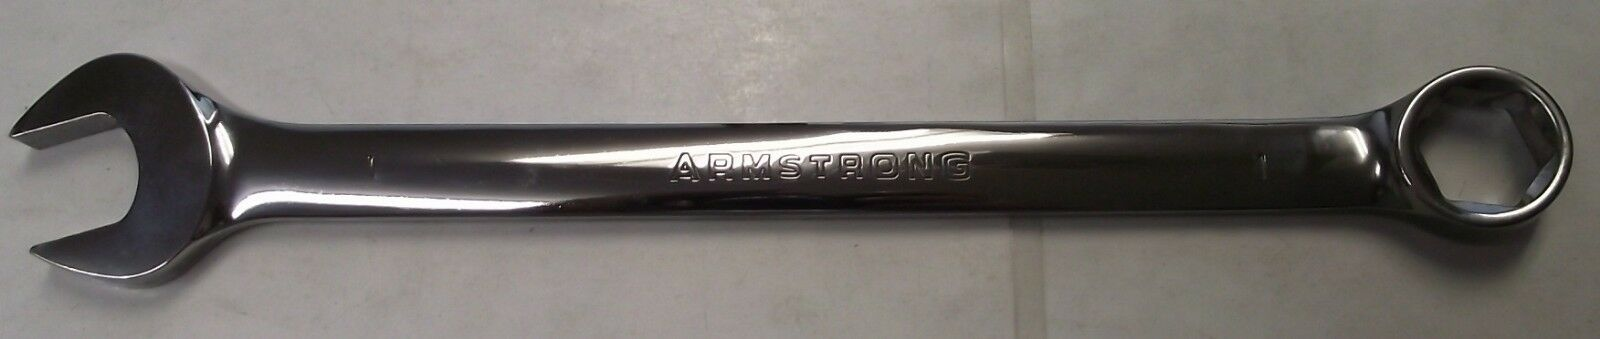 "Armstrong 25-332 6 Point 1/"" Full Polish Long Pattern Combination Wrench USA"